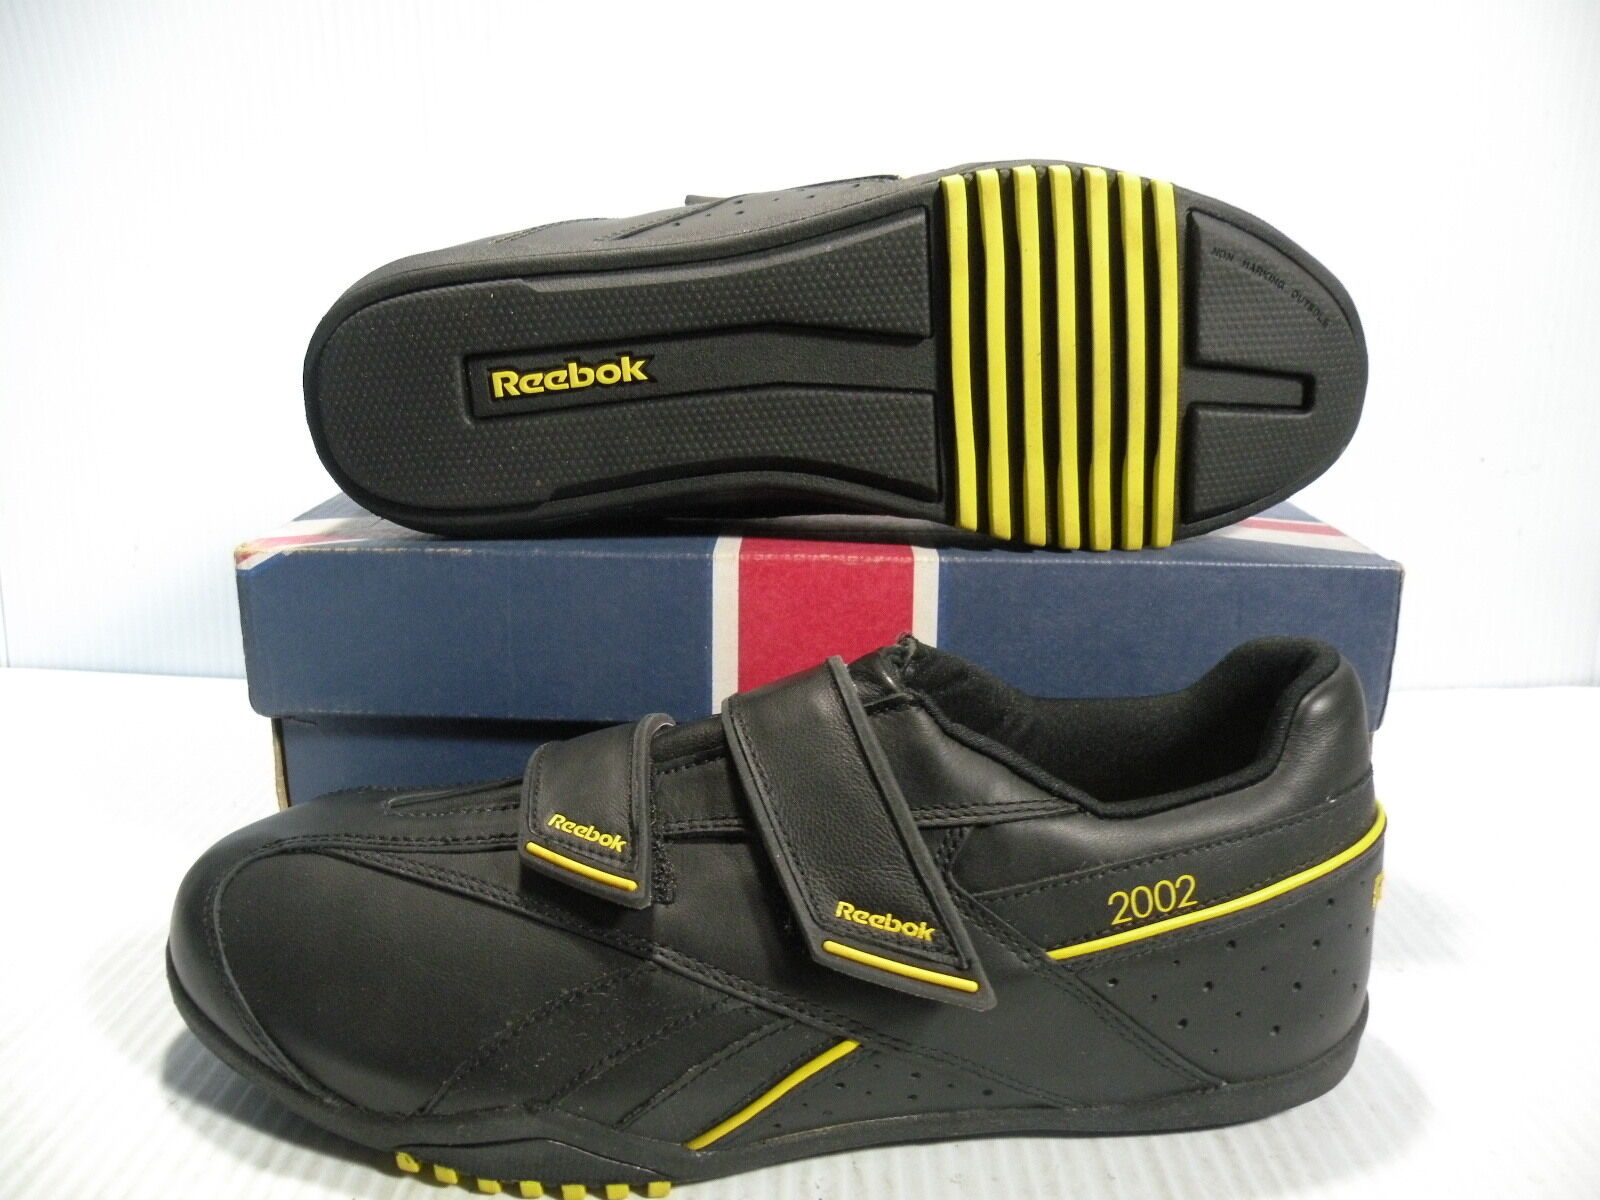 REEBOK CLASSIC CYCLOSPRING 32-76764 LOW SNEAKERS hommes Chaussures noir 32-76764 CYCLOSPRING SIZE 7 NEW a80d76